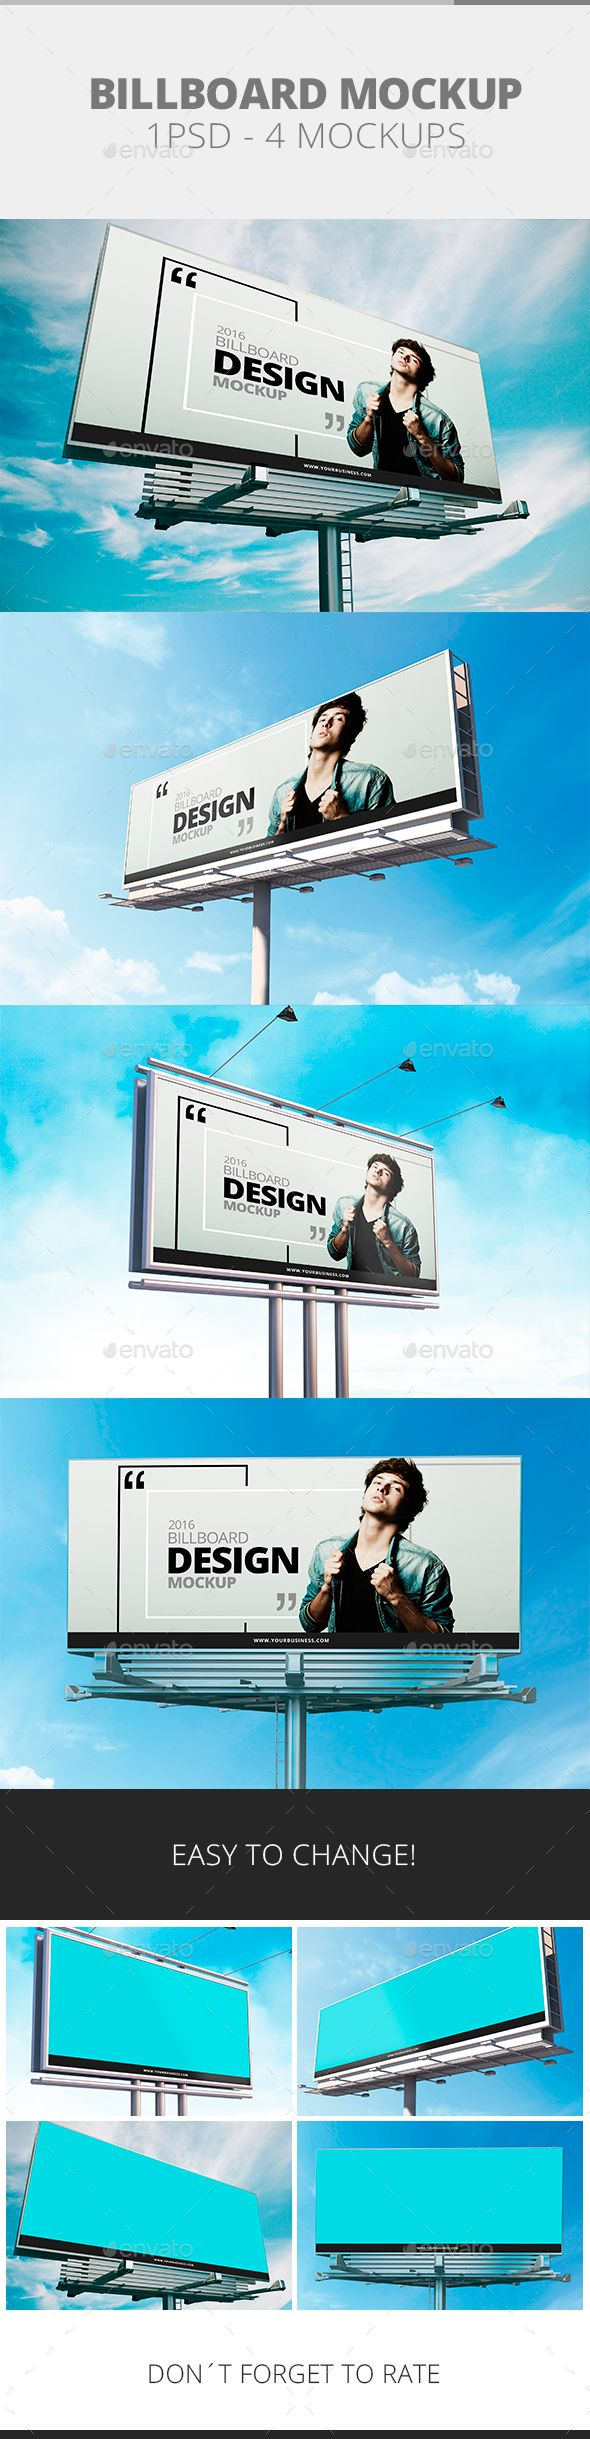 Billboard Mockup. Download here: http://graphicriver.net/item/billboard-mockup/15019468?ref=ksioks